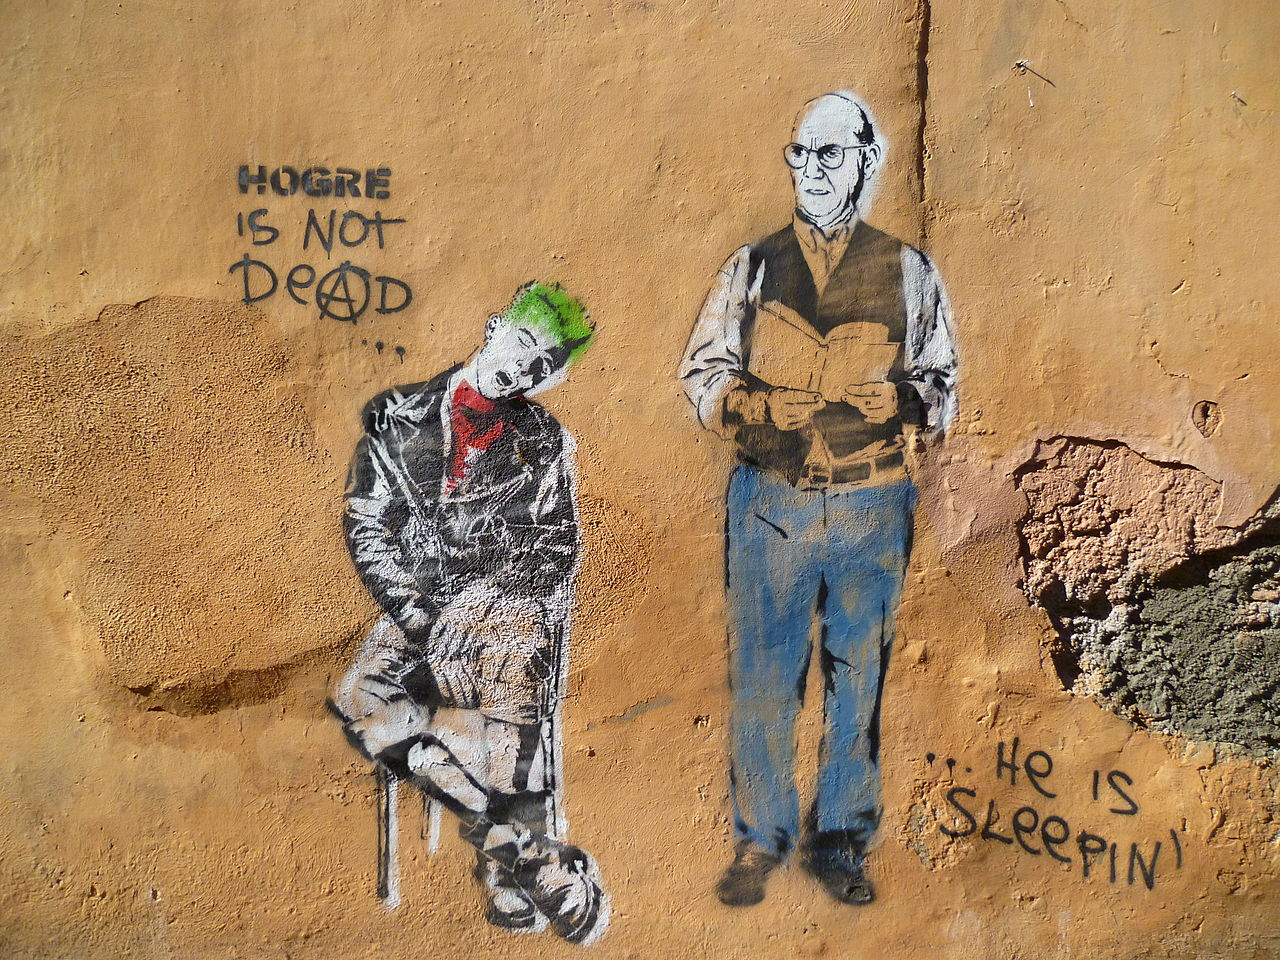 Hogre is not dead ... Street art Rome.jpg